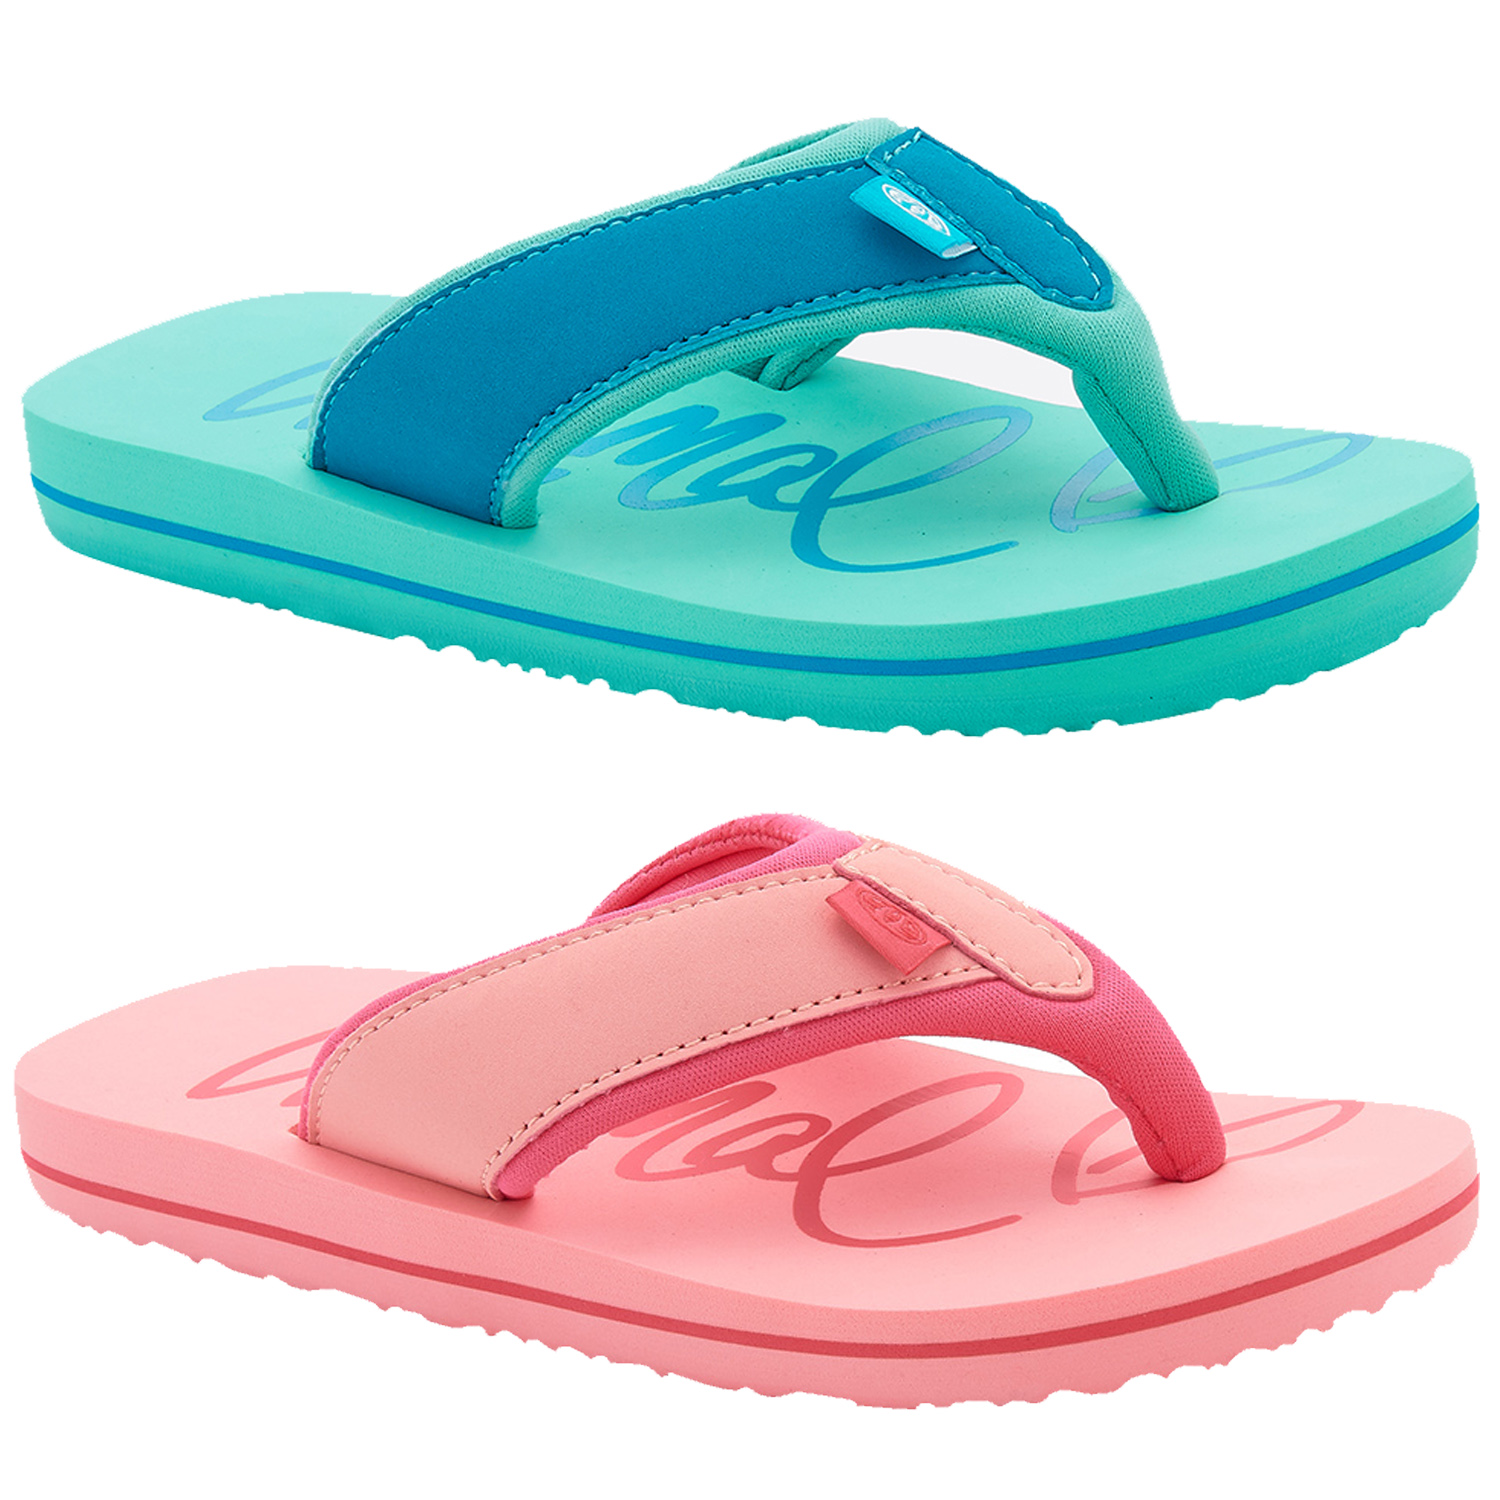 9377f805da5f76 Details about Animal Official Girls Swish Logo Thong Flip-Flops Kids Beach  Pool Padded Sandals